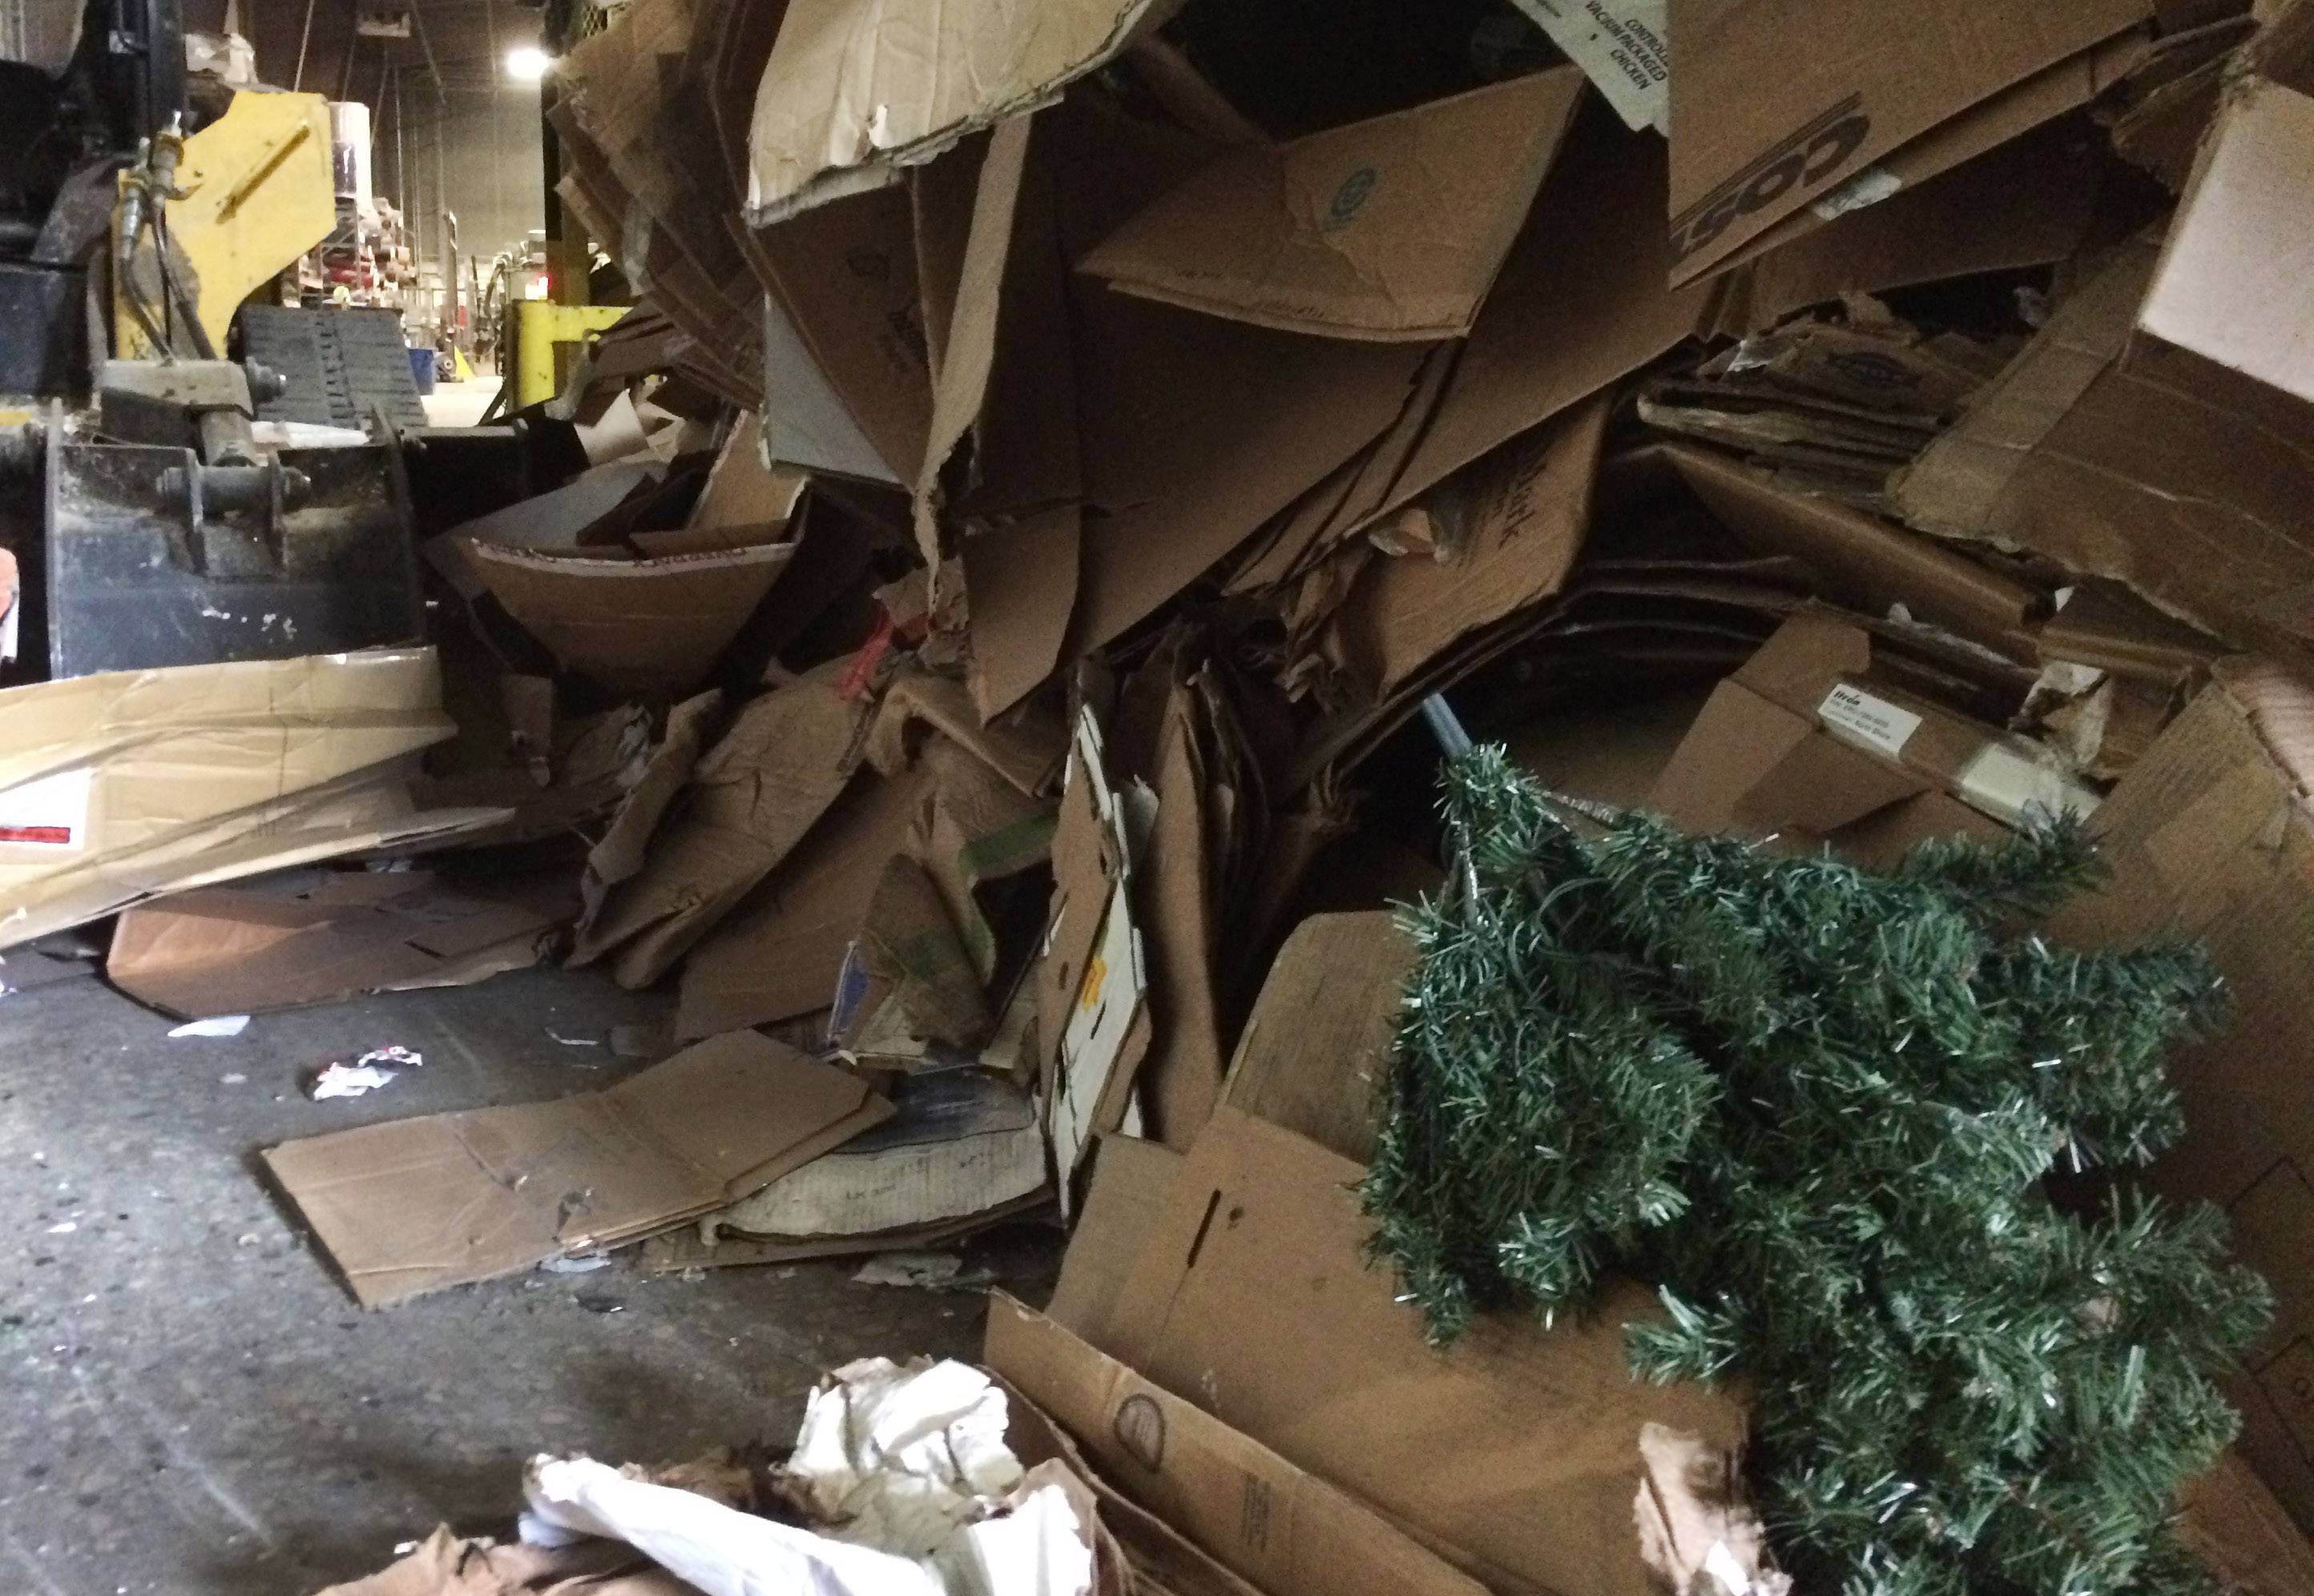 A small artificial Christmas tree is out of place in a mountain of cardboard at Waste Management facility in Grayslake, where recyclable materials are processed.